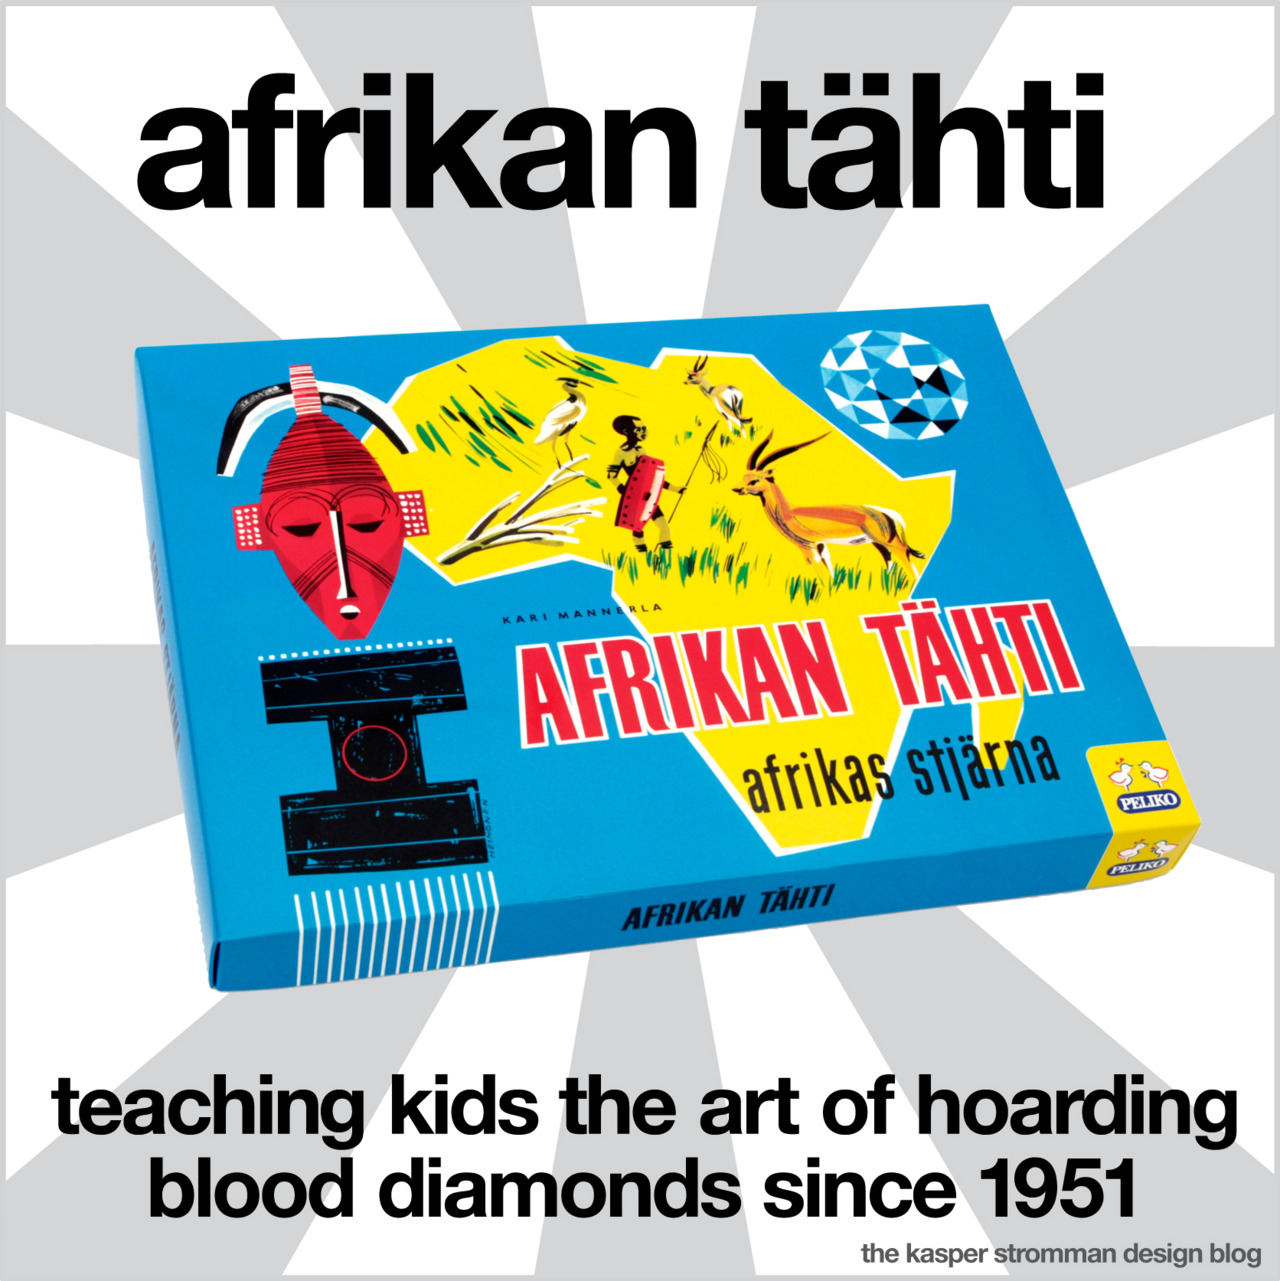 Afrikan tähti: teaching kids the art of hoarding blood diamonds since 1951 by Kasper Stromman on tumblr